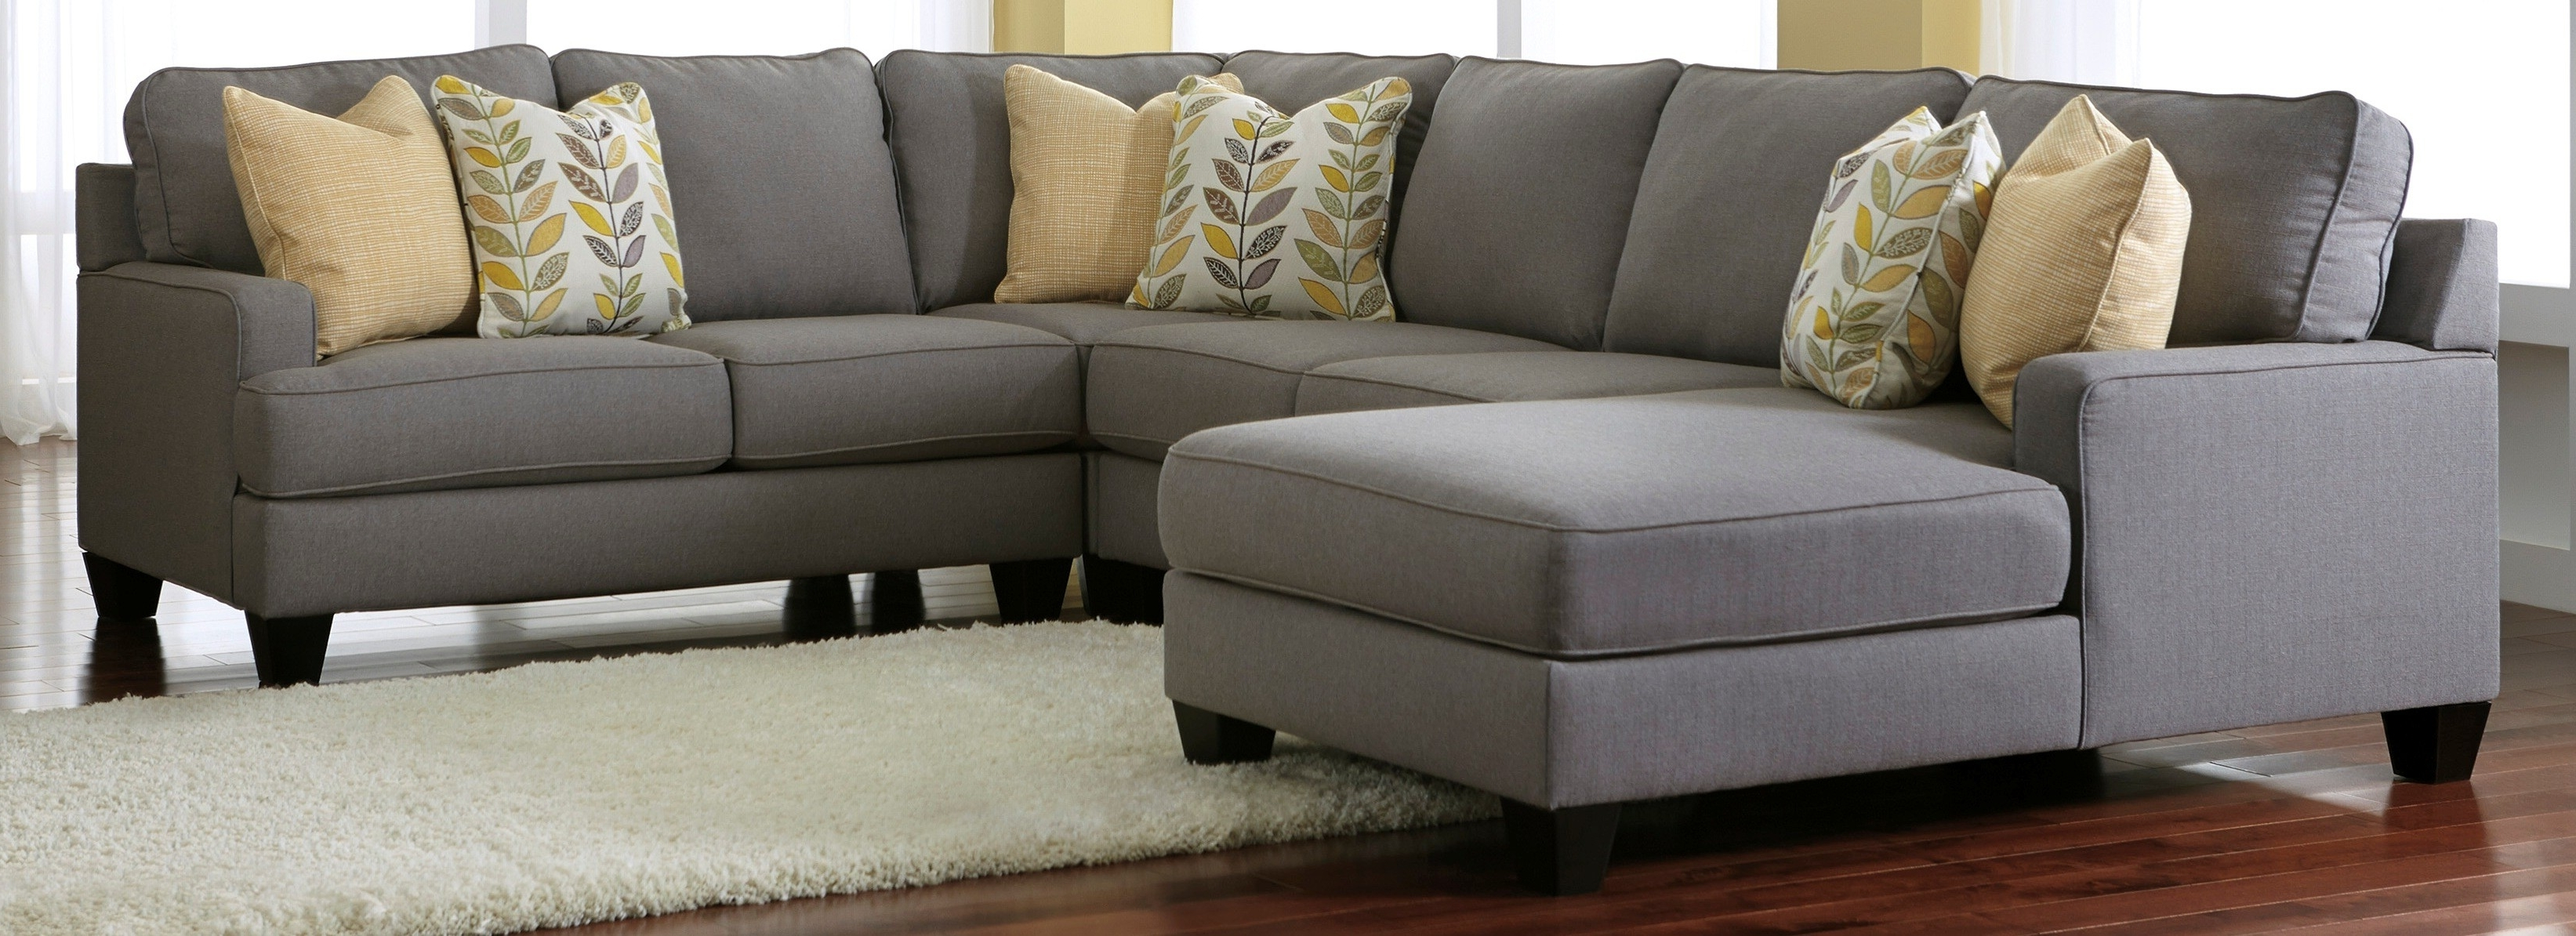 Recent Gray Sectionals With Chaise For Stunning Gray Sectional Sofas With Chaise Photos – Liltigertoo (View 9 of 15)